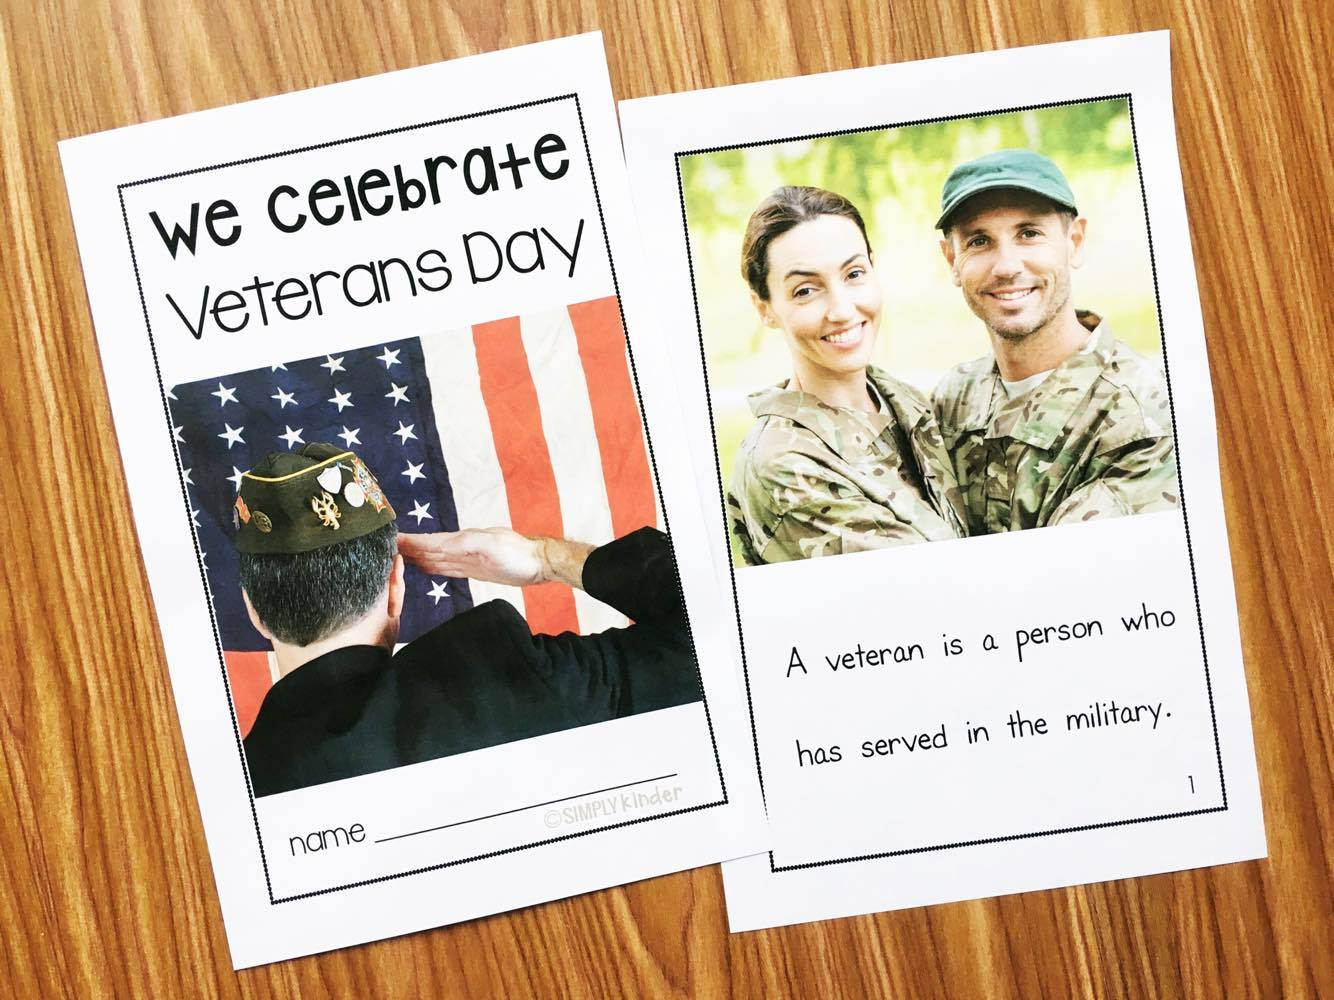 Veterans Day in Kindergarten   Simply Kinder Veterans Day Book for preschool  kindergarten  and first grades  Content is appropriate and